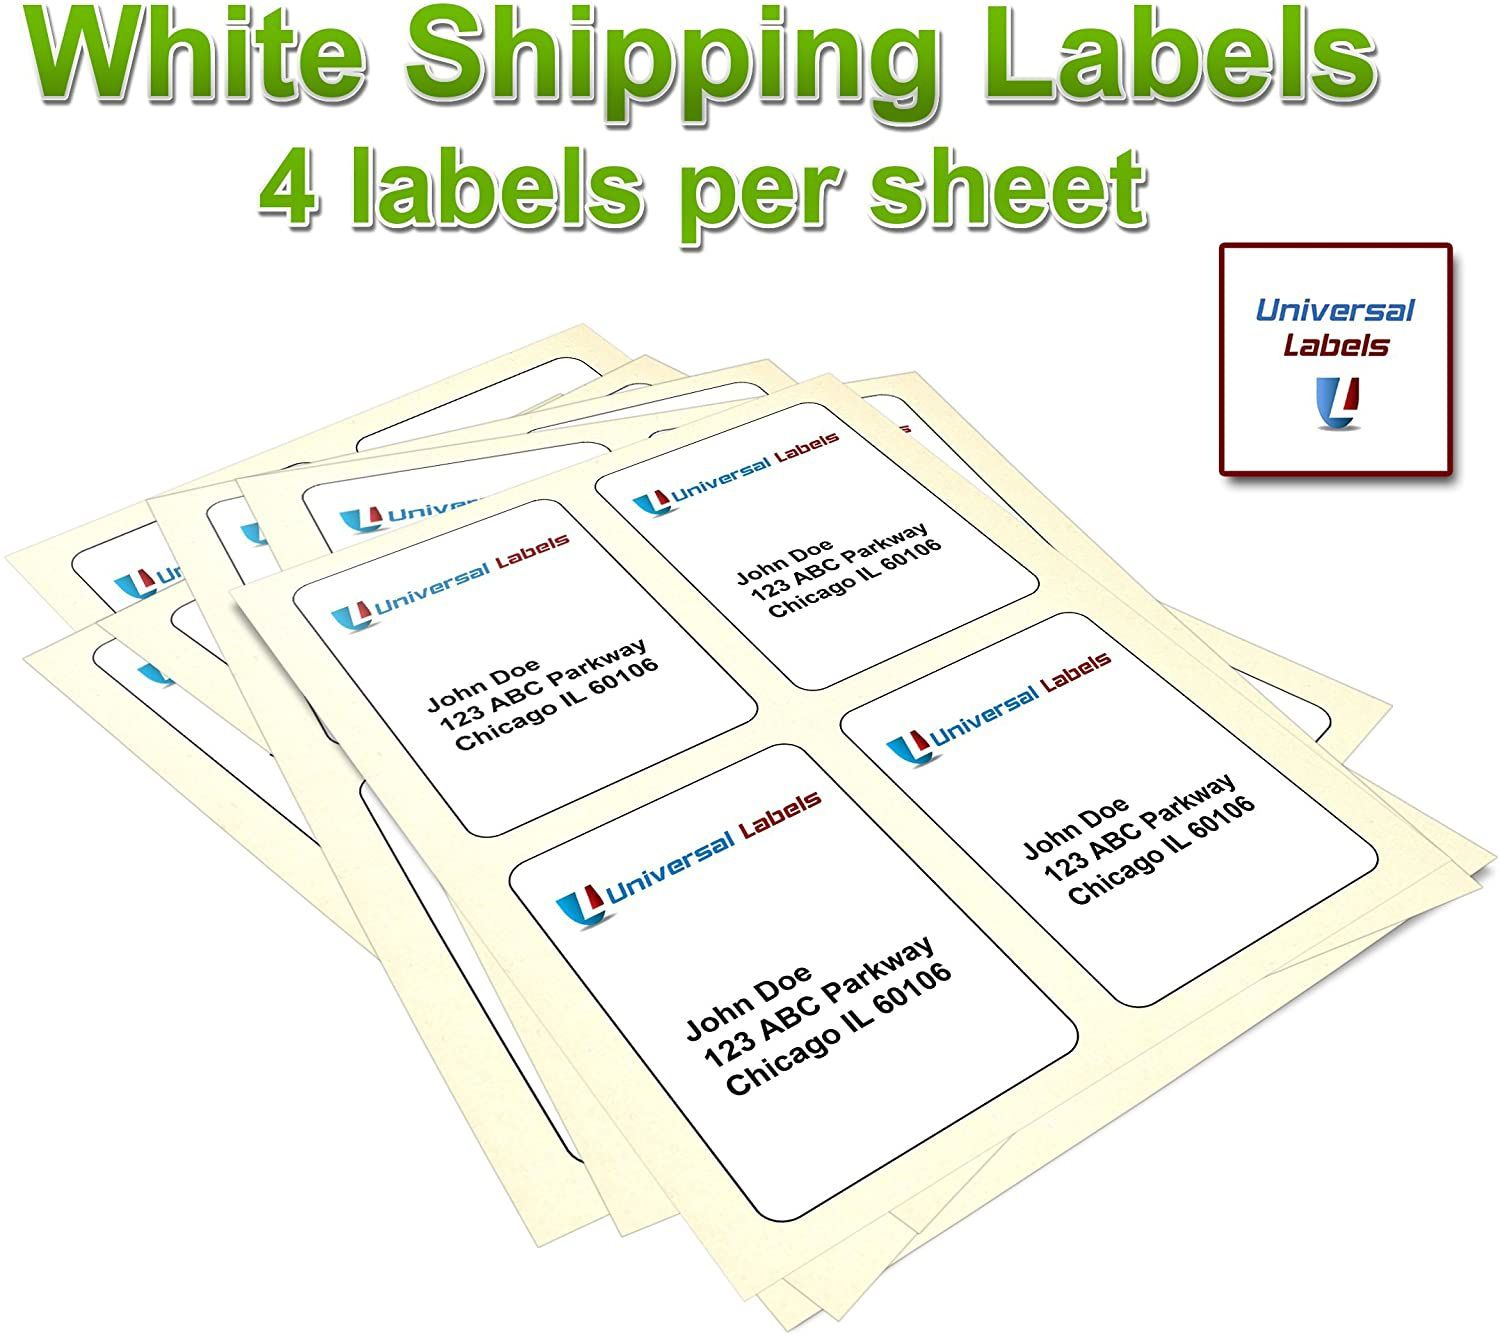 002 Sensational 4x6 Shipping Label Template Word High Definition Full